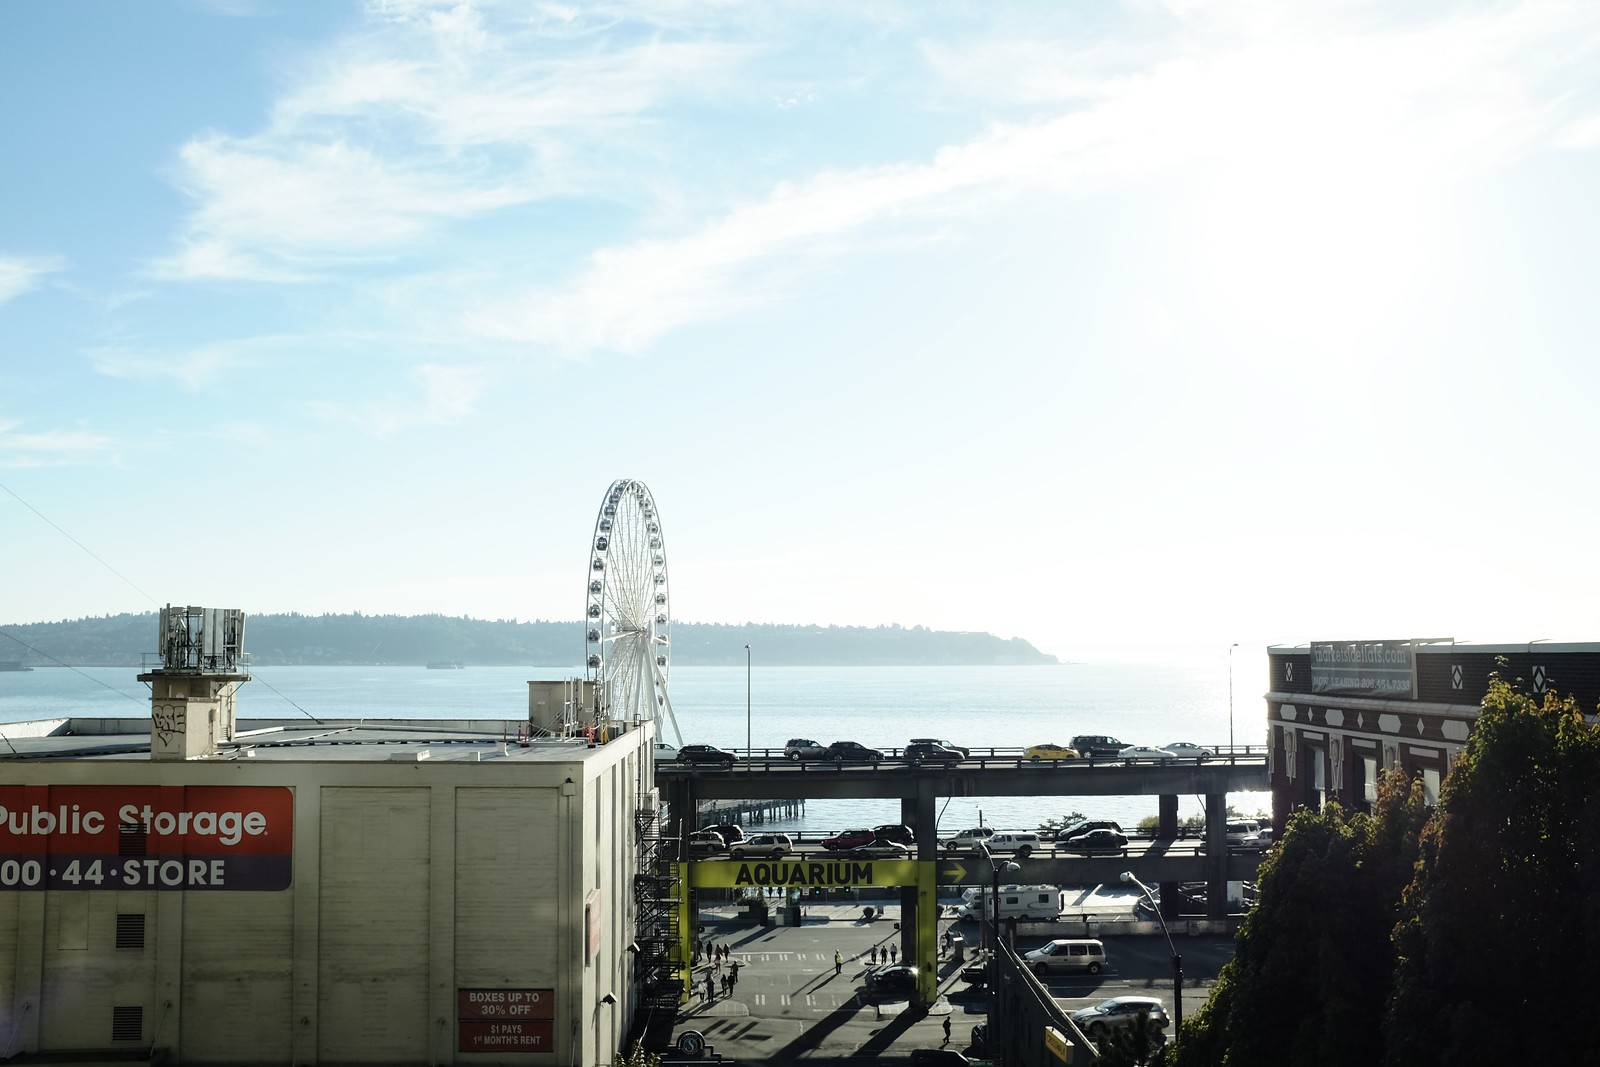 The Seattle taken by FUJIFILM X100S.